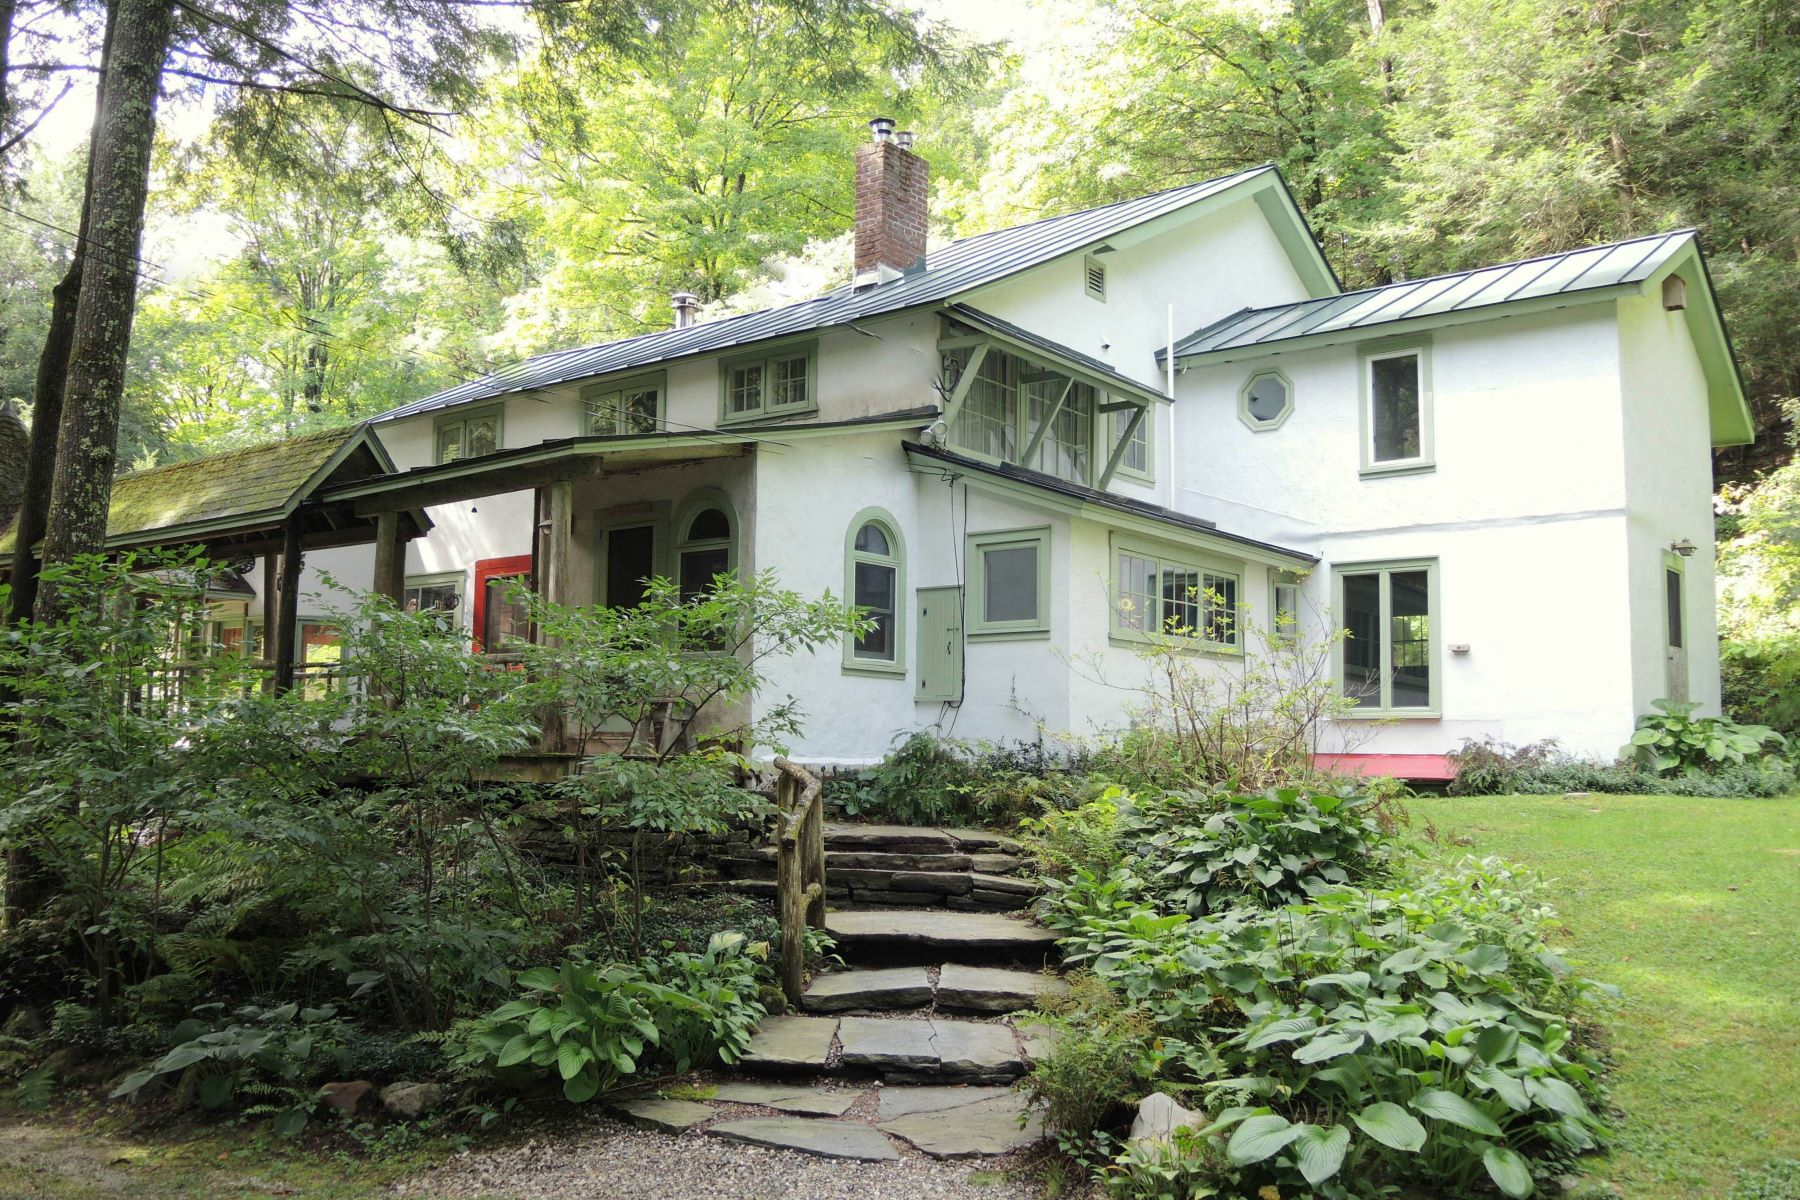 Single Family Home for Sale at Time to Go Fishing on Furnace Brook 2839 Furnace Brook Rd Chittenden, Vermont 05737 United States